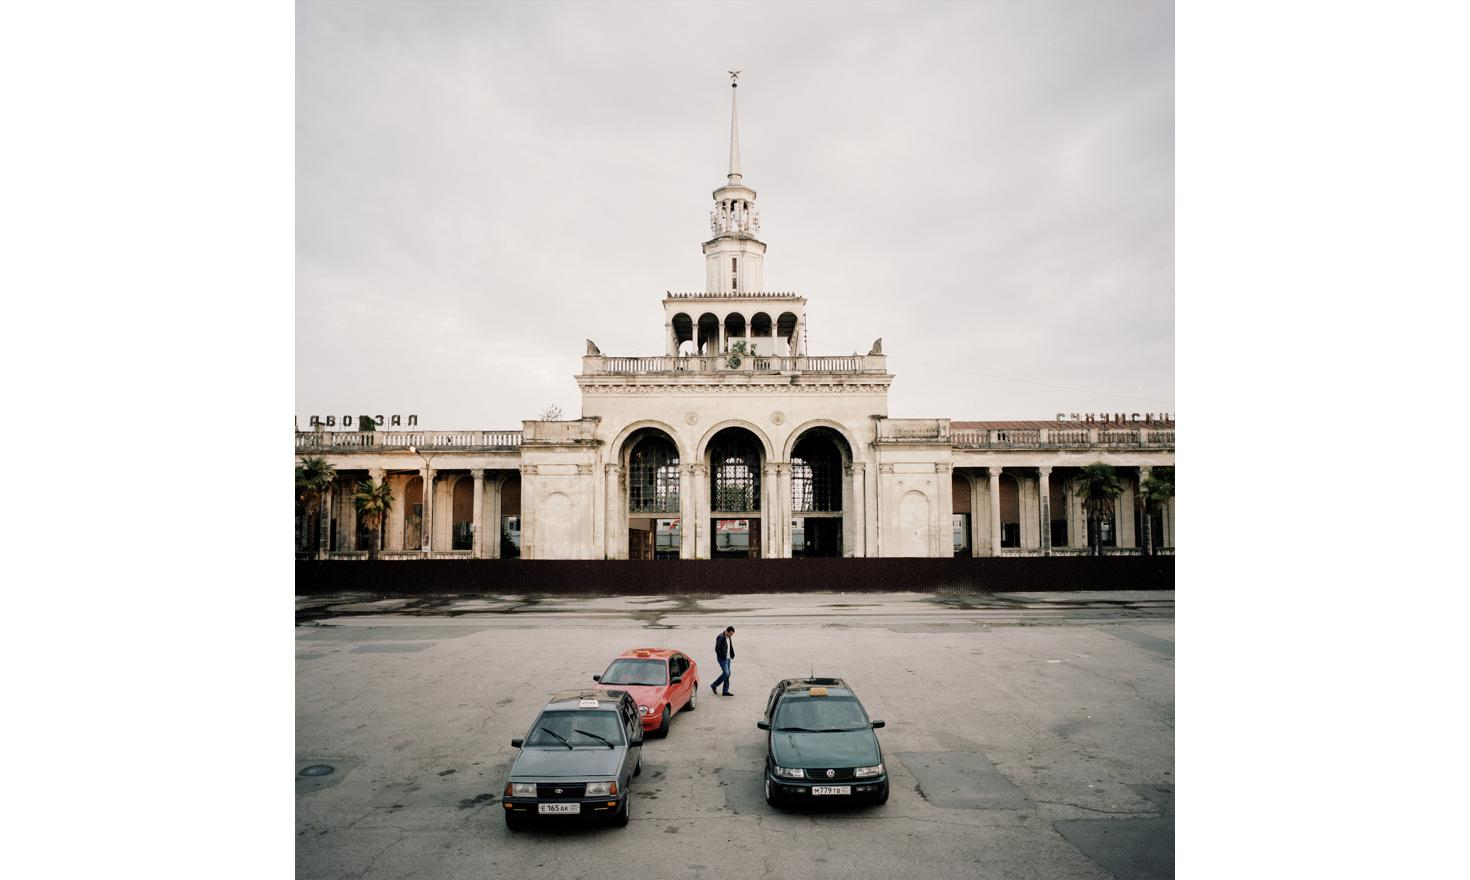 A man walk in front of the Sukhum(i) train station which is under renovation.